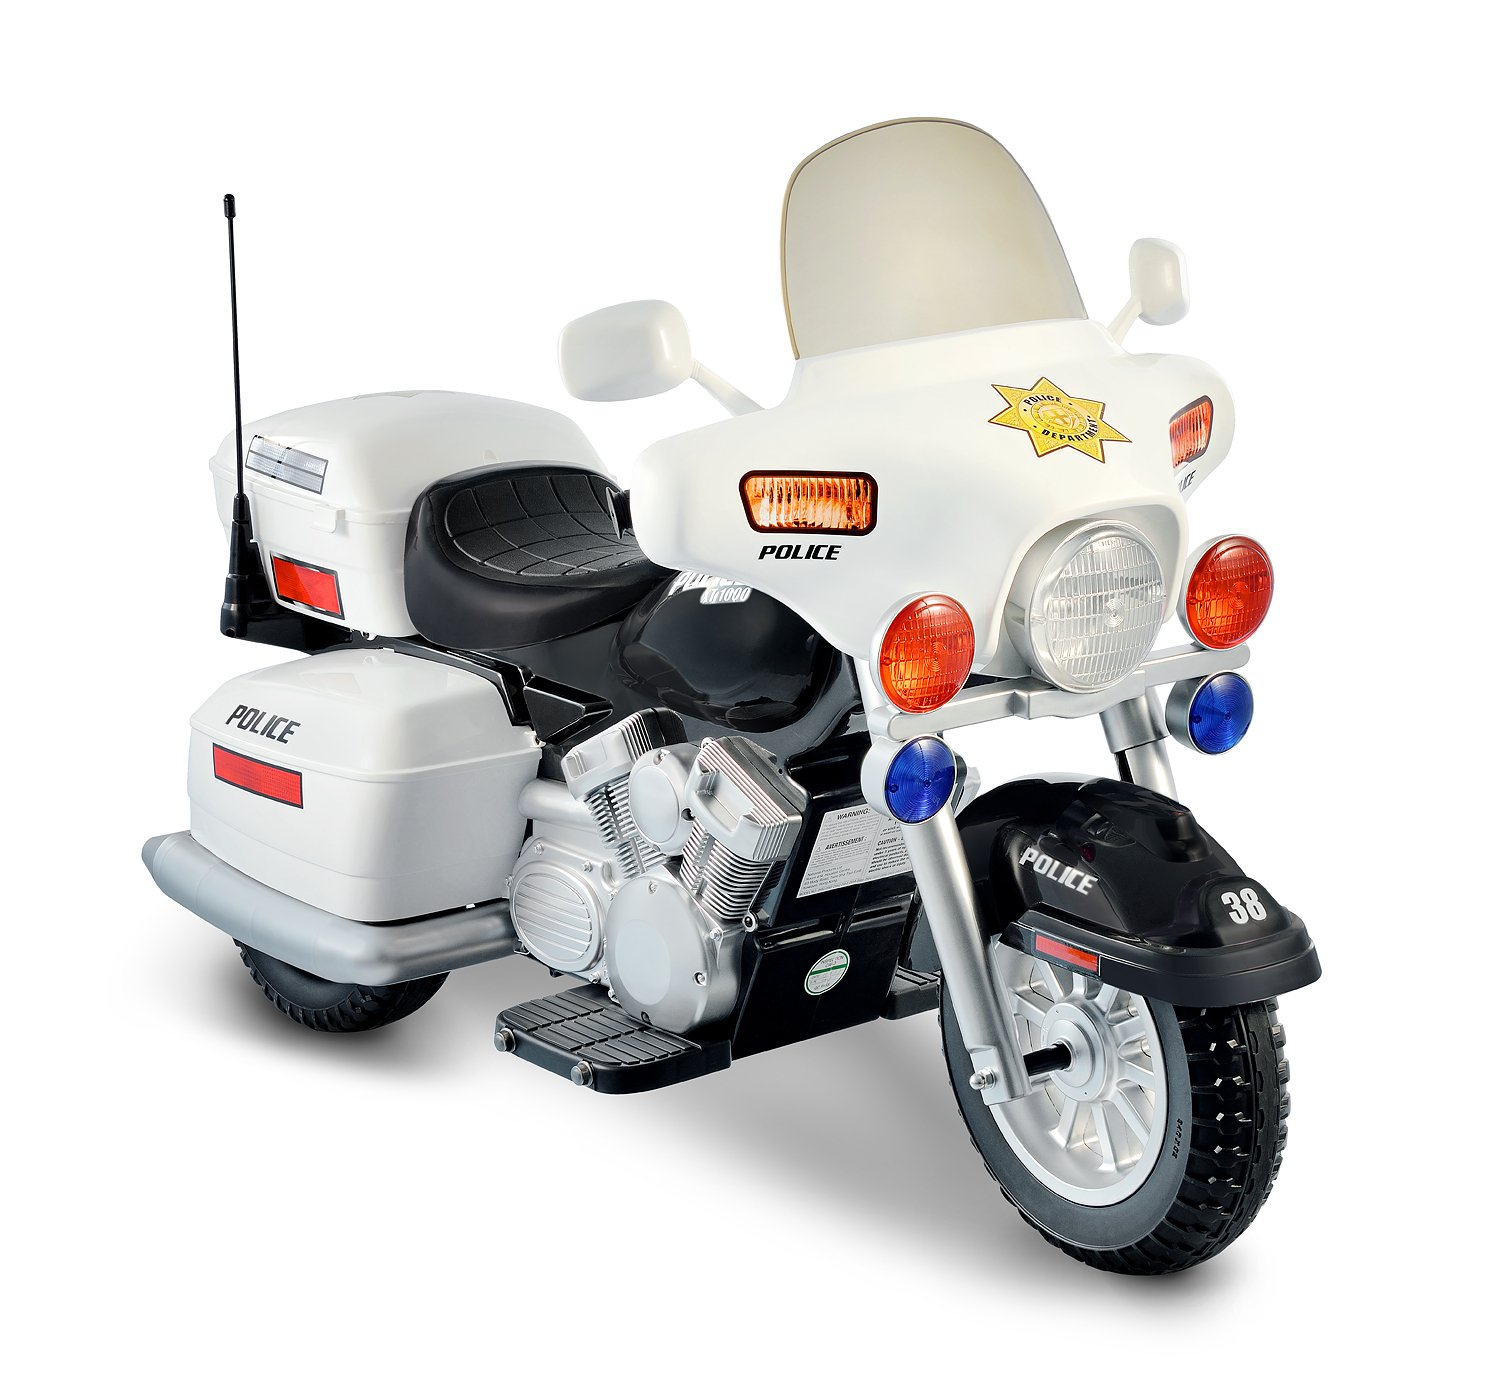 12V Police Motorcycle by National Products (Image #1)